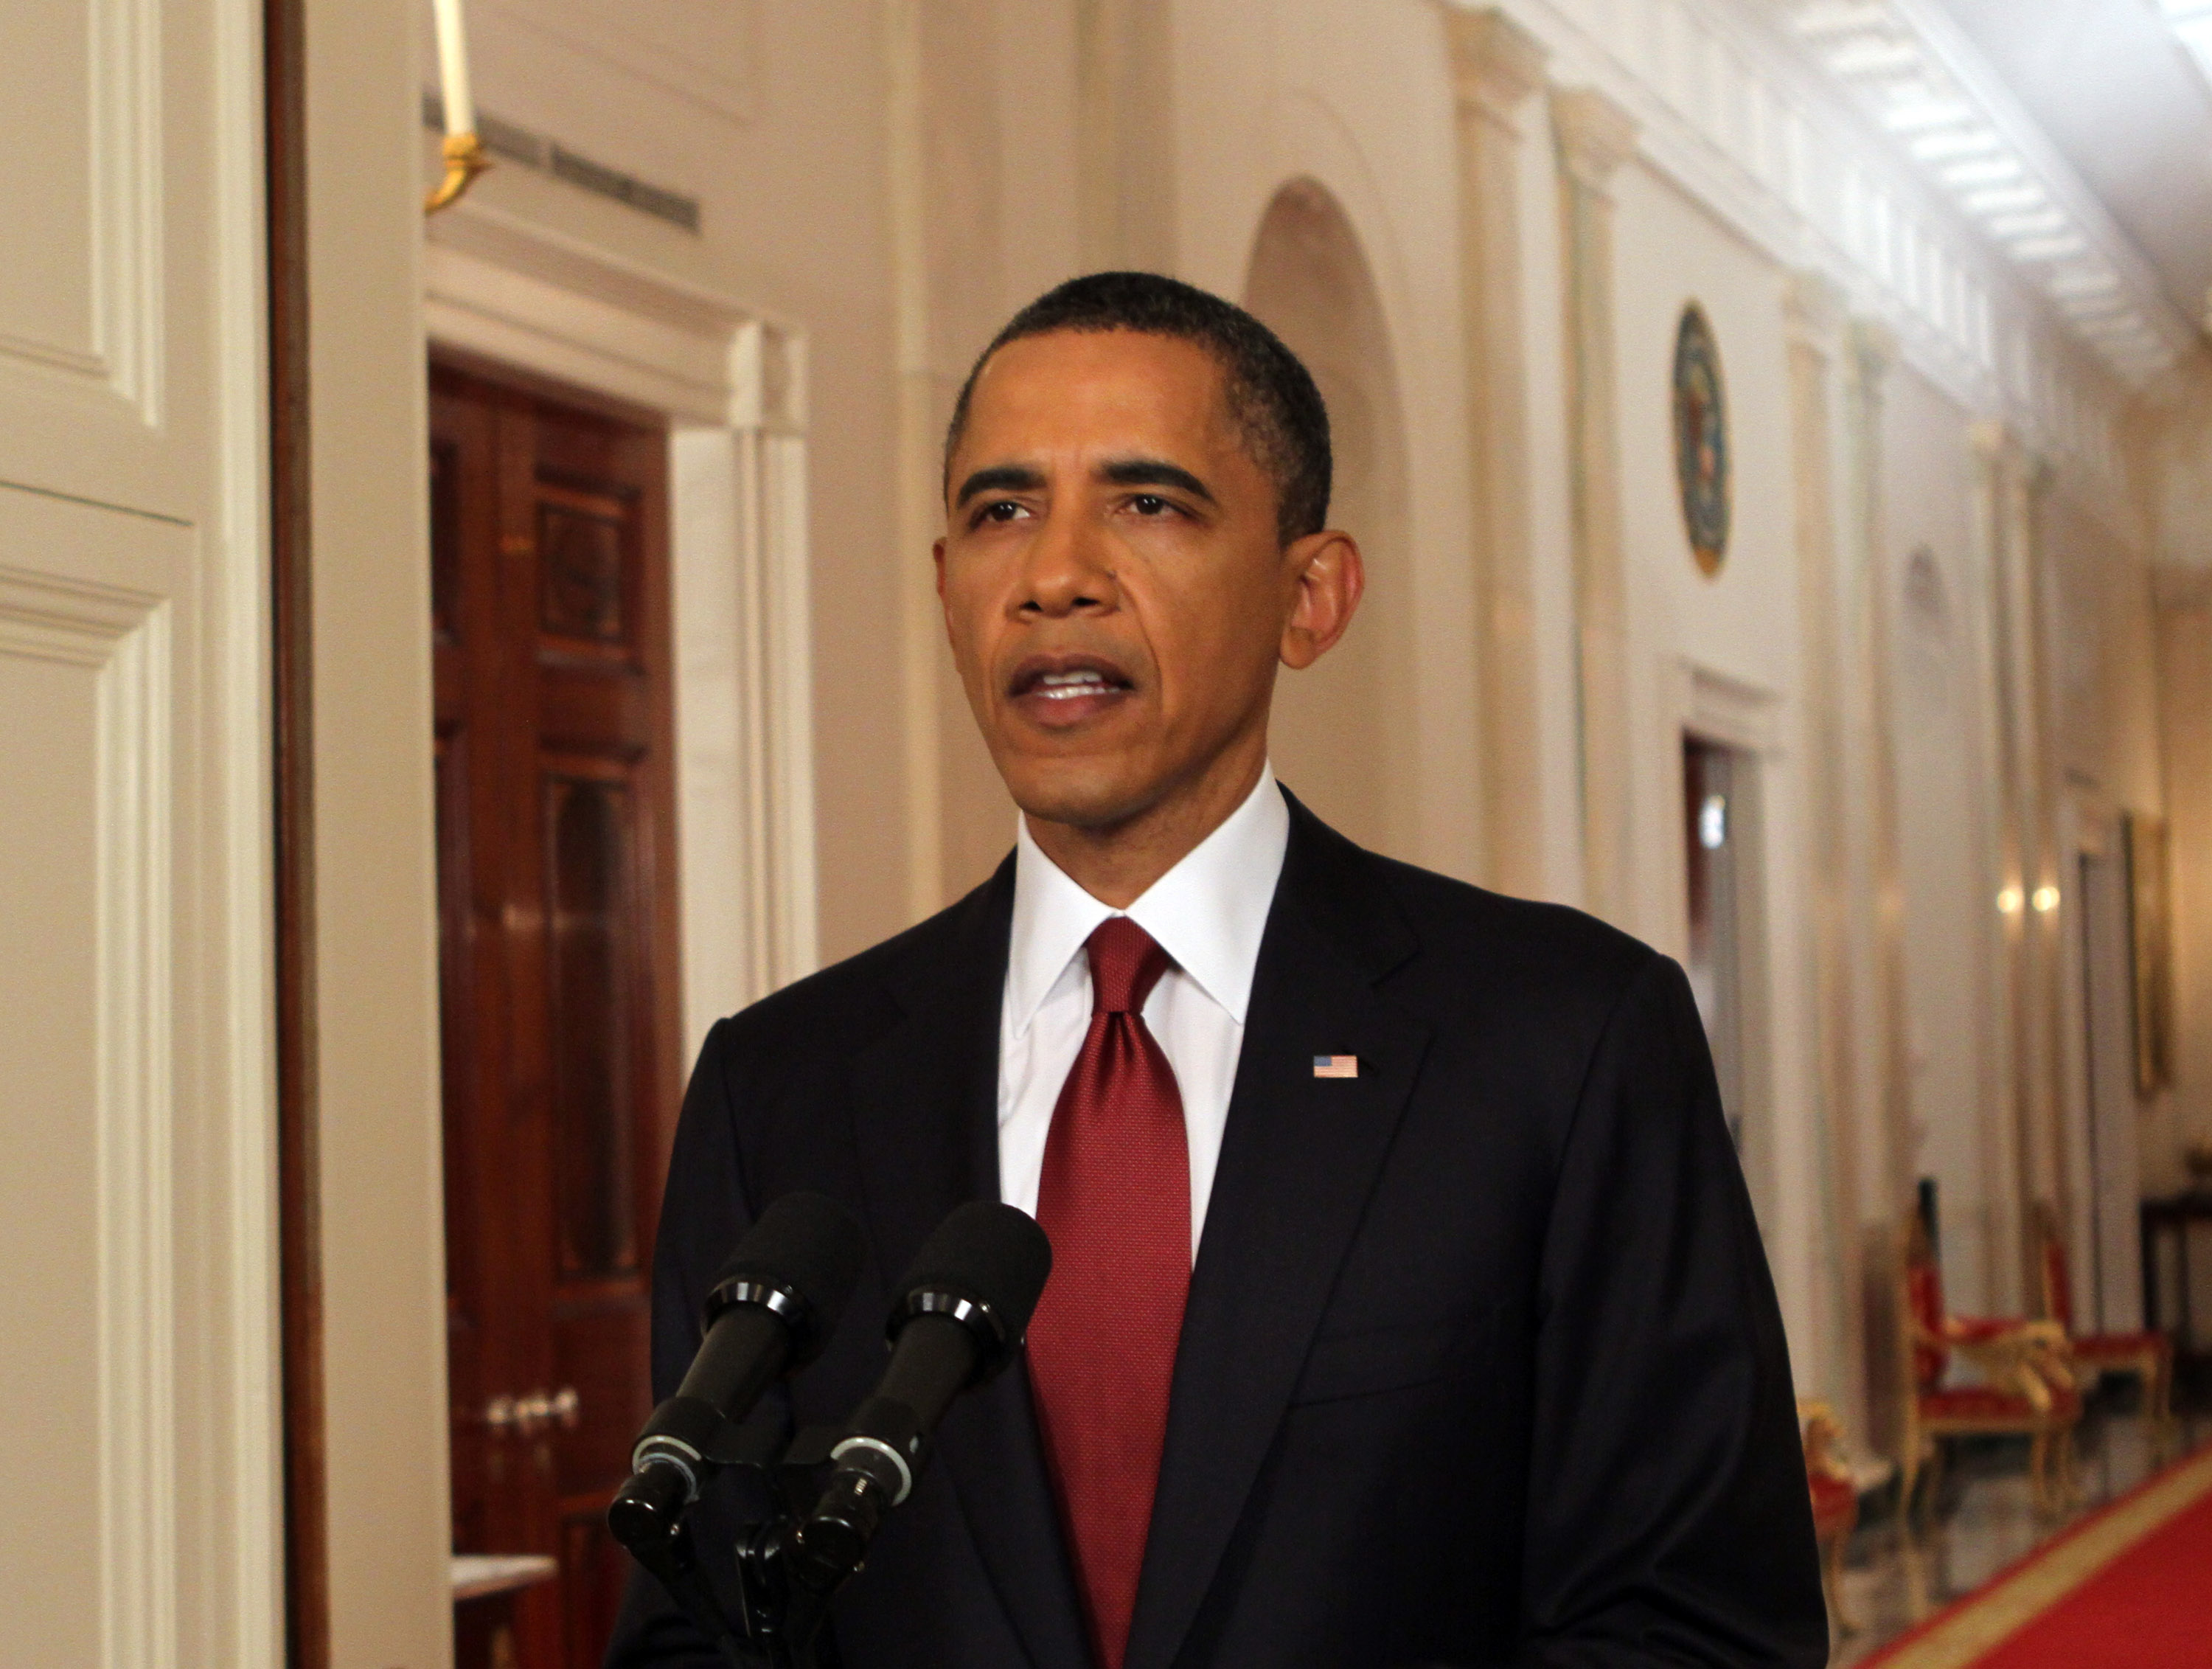 U.S. President Barack Obama announcing the death of Osama bin Laden at the White House in Washington on May 1, 2011